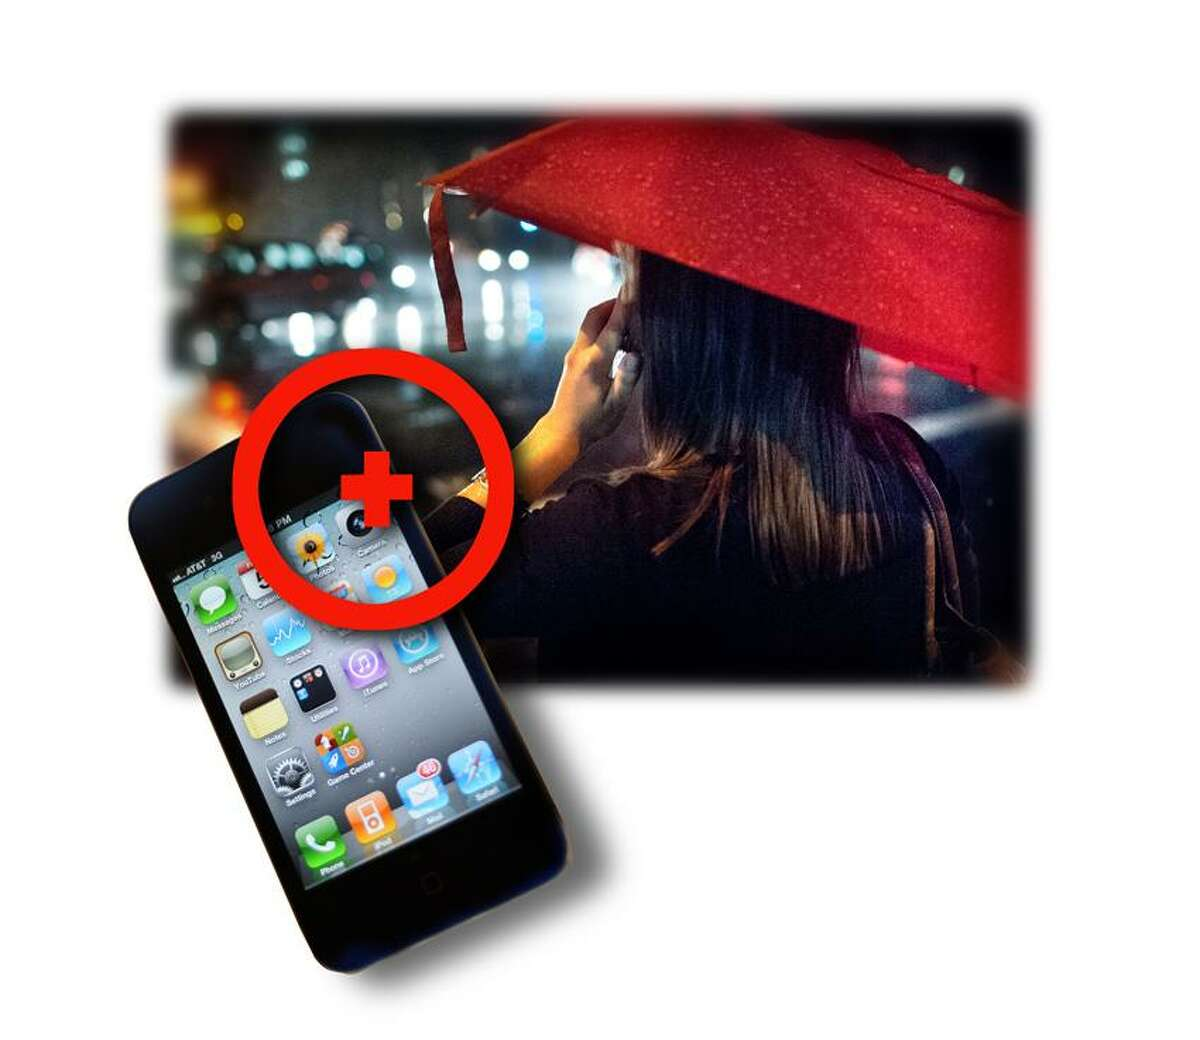 Targeting cellphones for theft October 4, 2012. vmWilliams